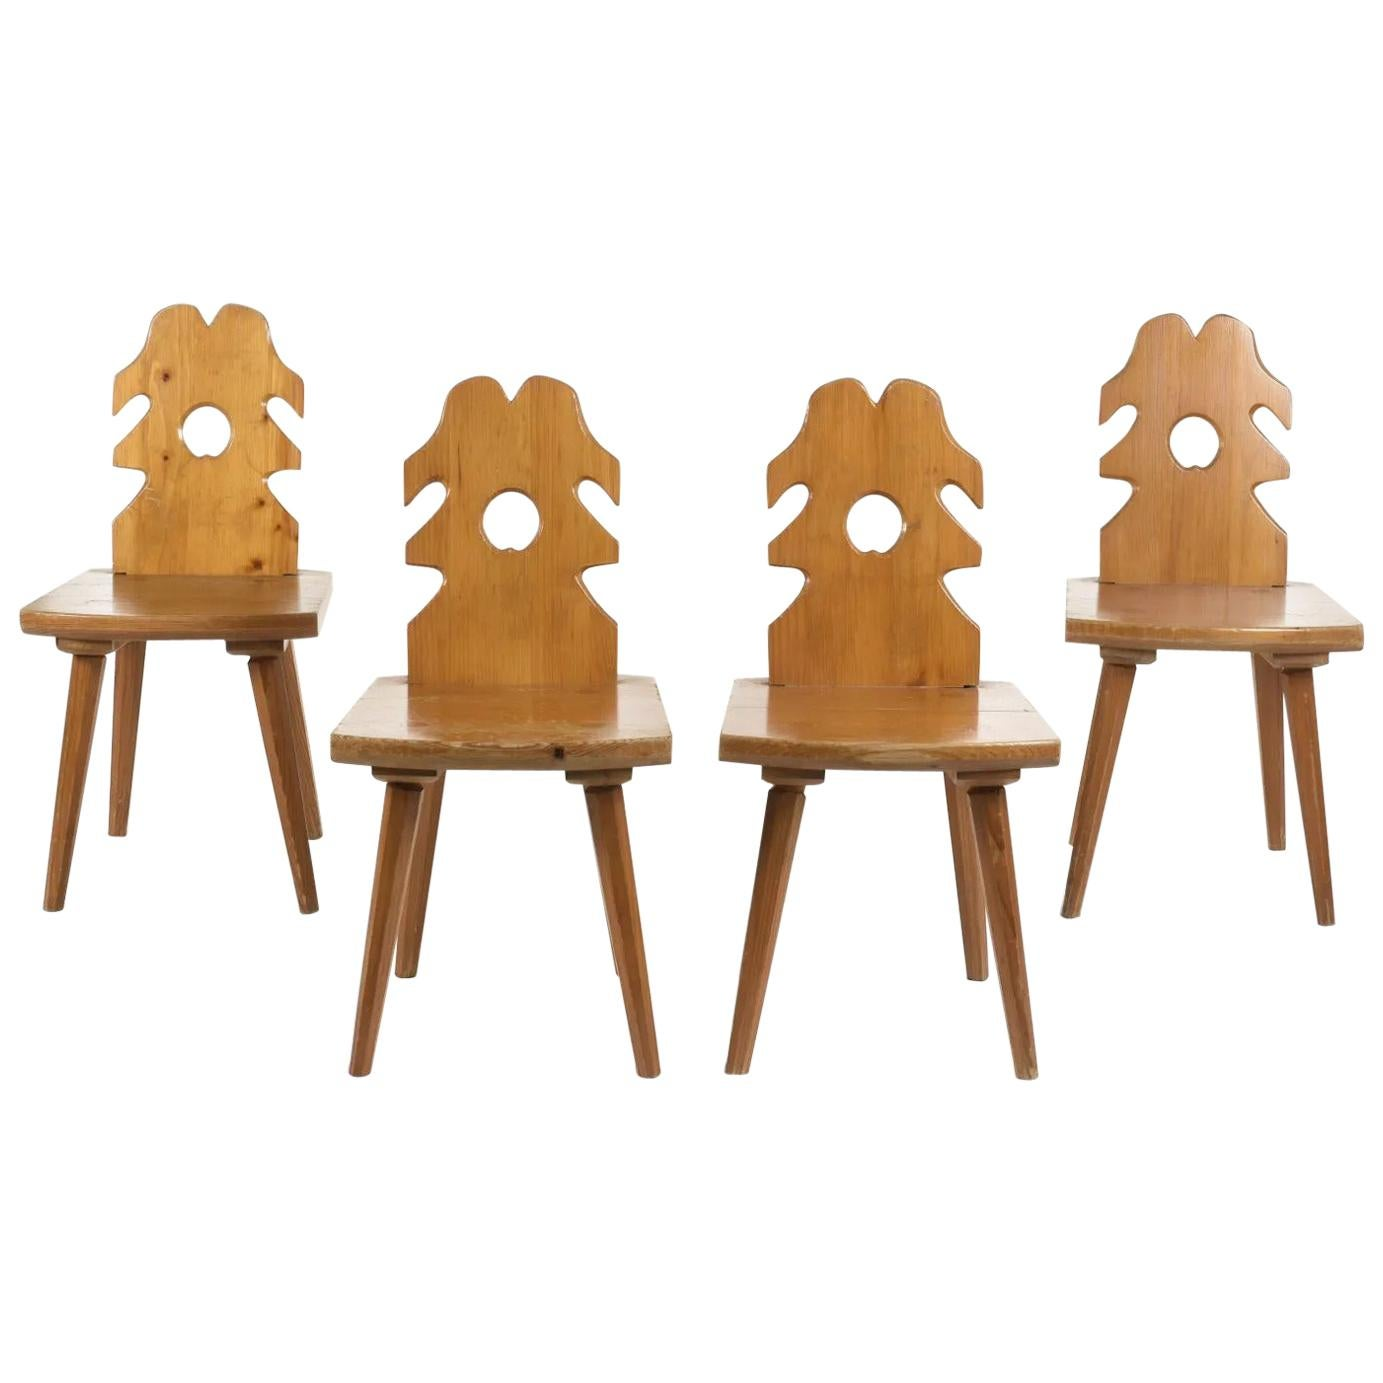 4 Brutalist Chairs in pine, circa 1950-1960